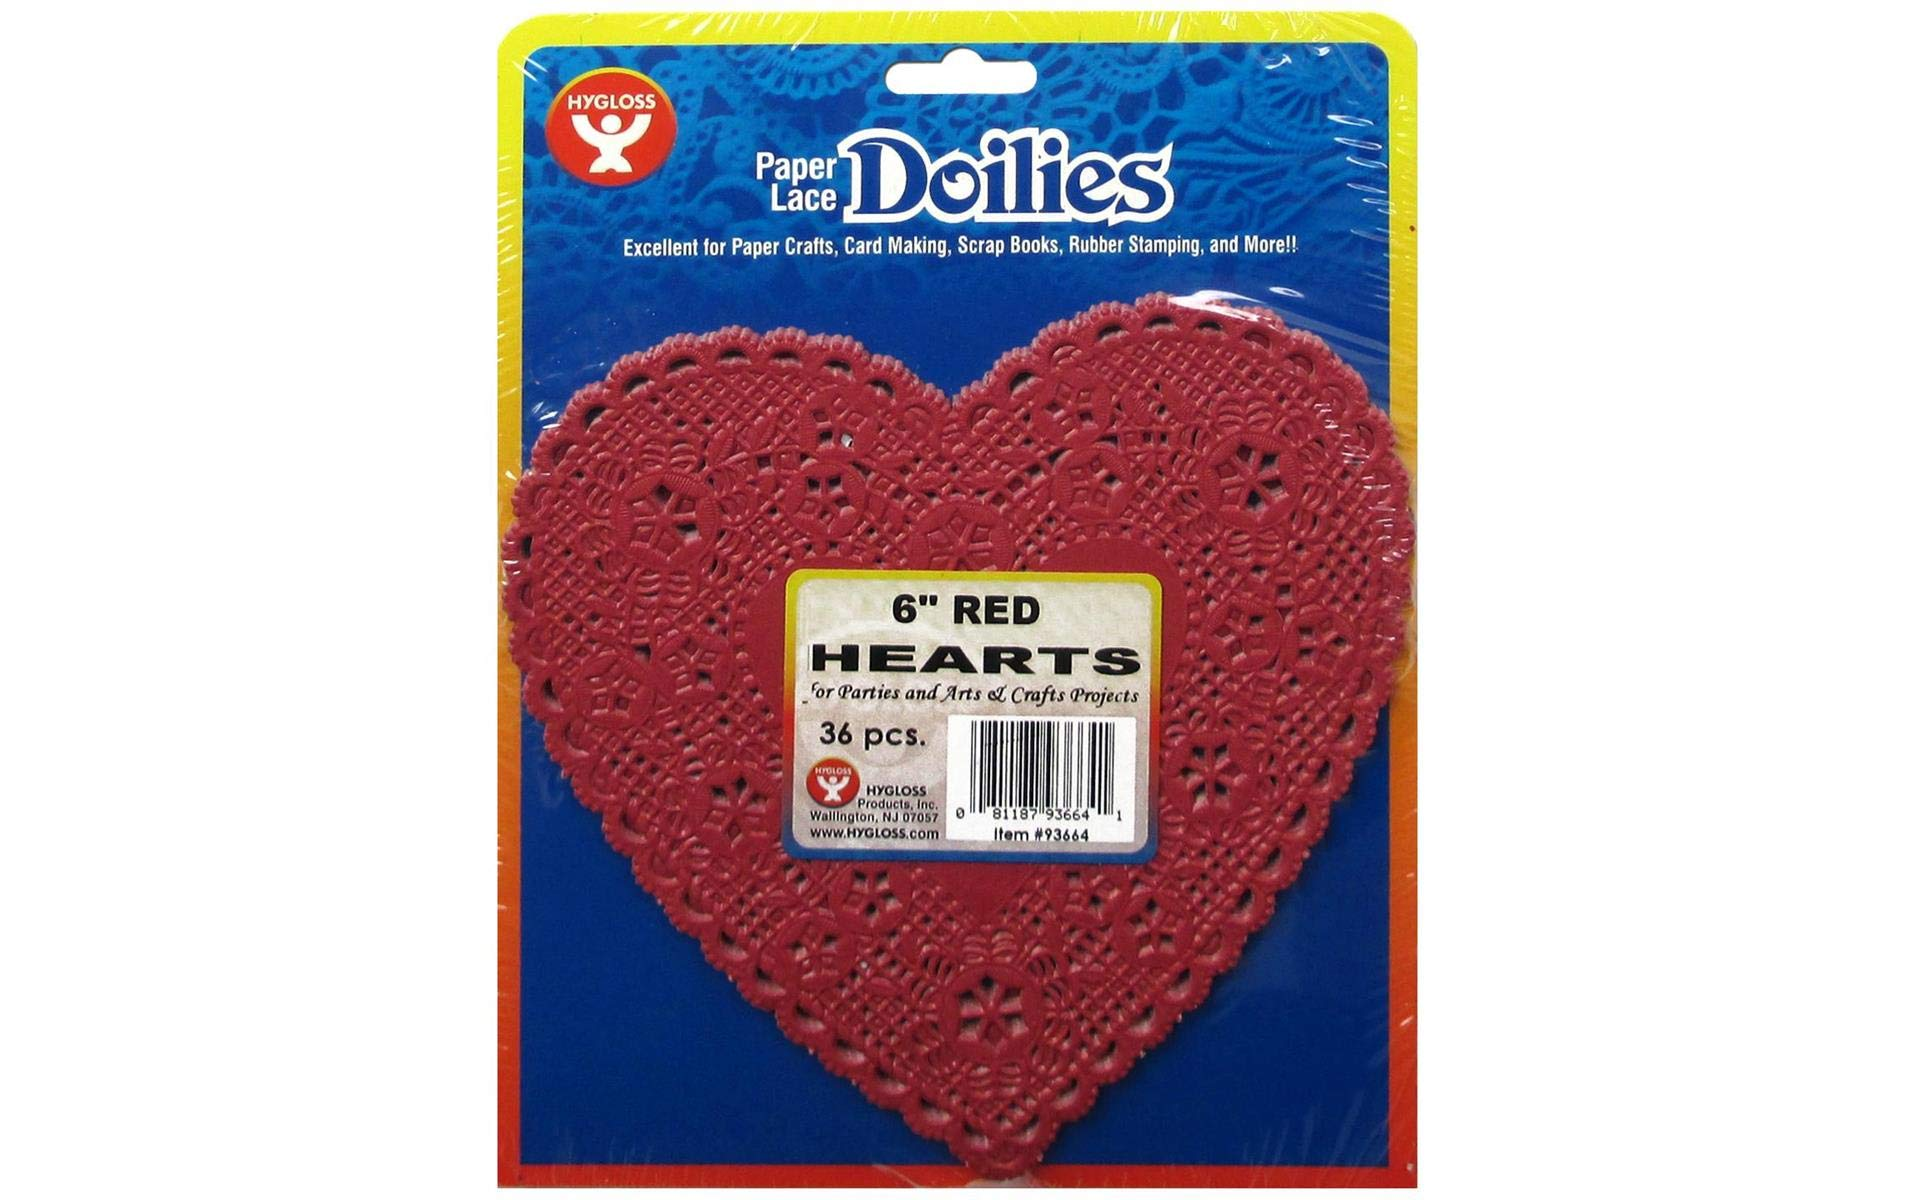 Hygloss Products Heart Paper Doilies – 6 Inch Red Lace Doily for Decorations, Crafts, Parties, 36 Pack